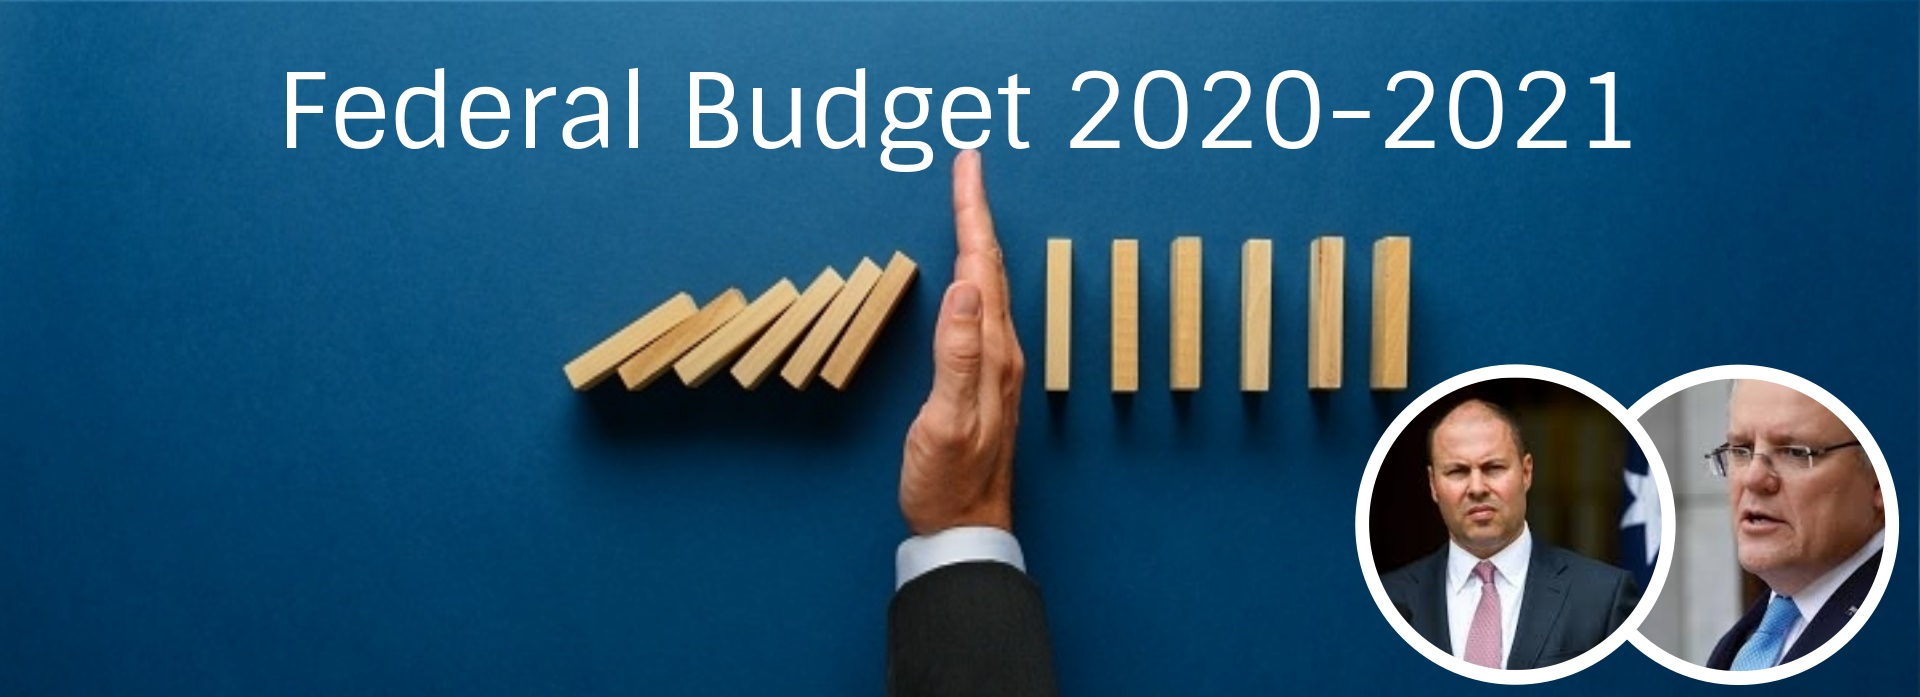 Federal Budget 2020/2021: What it means for Business and our Economy